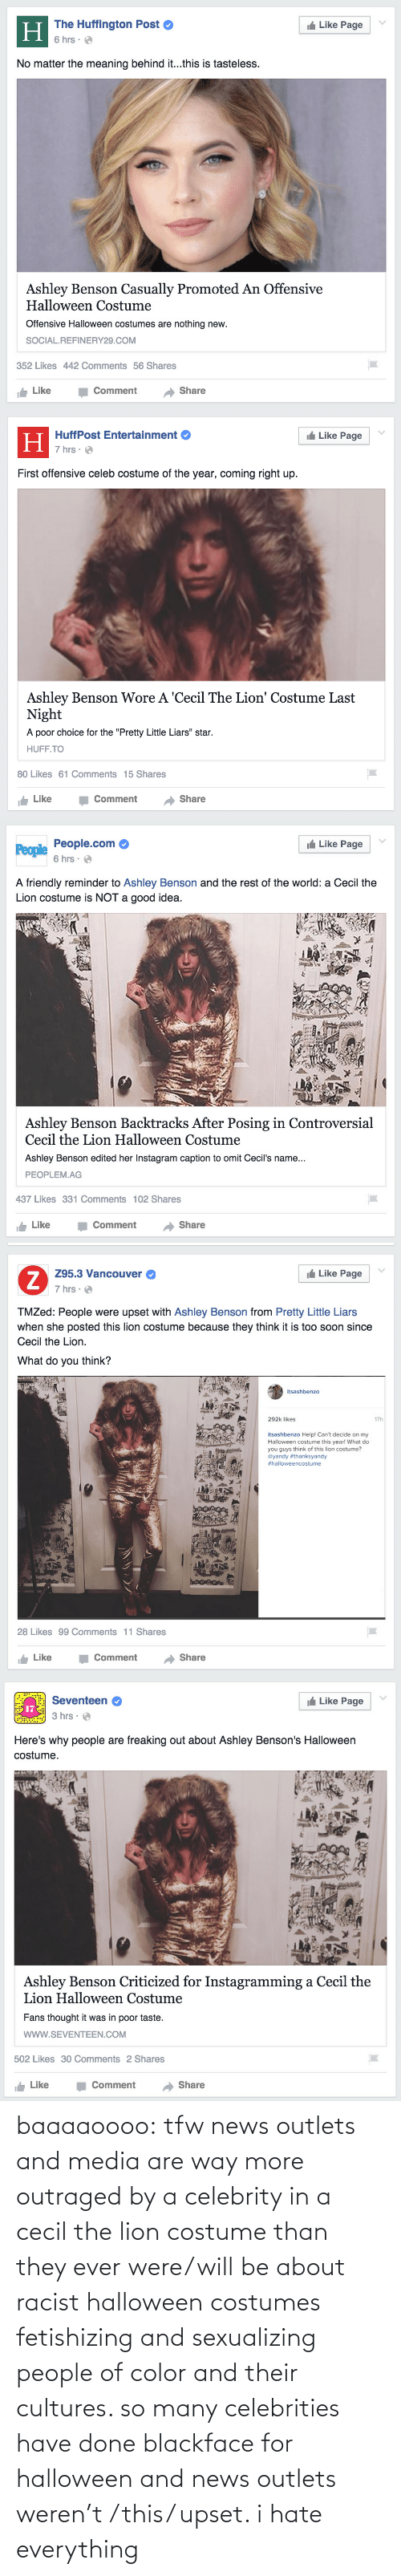 """Meaning Behind: The Huffington Post  6 hrs :  Like Page  Н  No matter the meaning behind it...this is tasteless.  Ashley Benson Casually Promoted An Offensive  Halloween Costume  Offensive Halloween costumes are nothing new.  SOCIAL.REFINERY29.COM  352 Likes 442 Comments 56 Shares  Share  Like  Comment   Like Page  HuffPost Entertainment  Н  7 hrs ·  O  First offensive celeb costume of the year, coming right up.  Ashley Benson Wore A 'Cecil The Lion' Costume Last  Night  A poor choice for the """"Pretty Little Liars"""" star.  HUFF.TO  80 Likes 61 Comments 15 Shares  Like  Share  Comment   t Like Page  People.com  People  6 hrs · O  A friendly reminder to Ashley Benson and the rest of the world: a Cecil the  Lion costume is NOT a good idea.  Ashley Benson Backtracks After Posing in Controversial  Cecil the Lion Halloween Costume  Ashley Benson edited her Instagram caption to omit Cecil's name...  PEOPLEM.AG  437 Likes 331 Comments 102 Shares  Share  Like  Comment   I Like Page  Z95.3 Vancouver  7 hrs · O  TMZed: People were upset with Ashley Benson from Pretty Little Liars  when she posted this lion costume because they think it is too soon since  Cecil the Lion.  What do you think?  itsashbenzo  292k likes  17h  itsashbenzo Help! Can't decide on my  Halloween costume this year! What do  you guys think of this lion costume?  @yandy #thanksyandy  #halloweencostume  28 Likes 99 Comments 11 Shares  Share  Like  Comment   Like Page  Seventeen  17  3 hrs · O  Here's why people are freaking out about Ashley Benson's Halloween  costume.  Ashley Benson Criticized for Instagramming a Cecil the  Lion Halloween Costume  Fans thought it was in poor taste.  www.SEVENTEEN.COM  502 Likes 30 Comments 2 Shares  Comment  Share  Like baaaaoooo:  tfw news outlets and media are way more outraged by a celebrity in a cecil the lion costume than they ever were/will be about racist halloween costumes fetishizing and sexualizing people of color and their cultures. so many celebrities have done bla"""